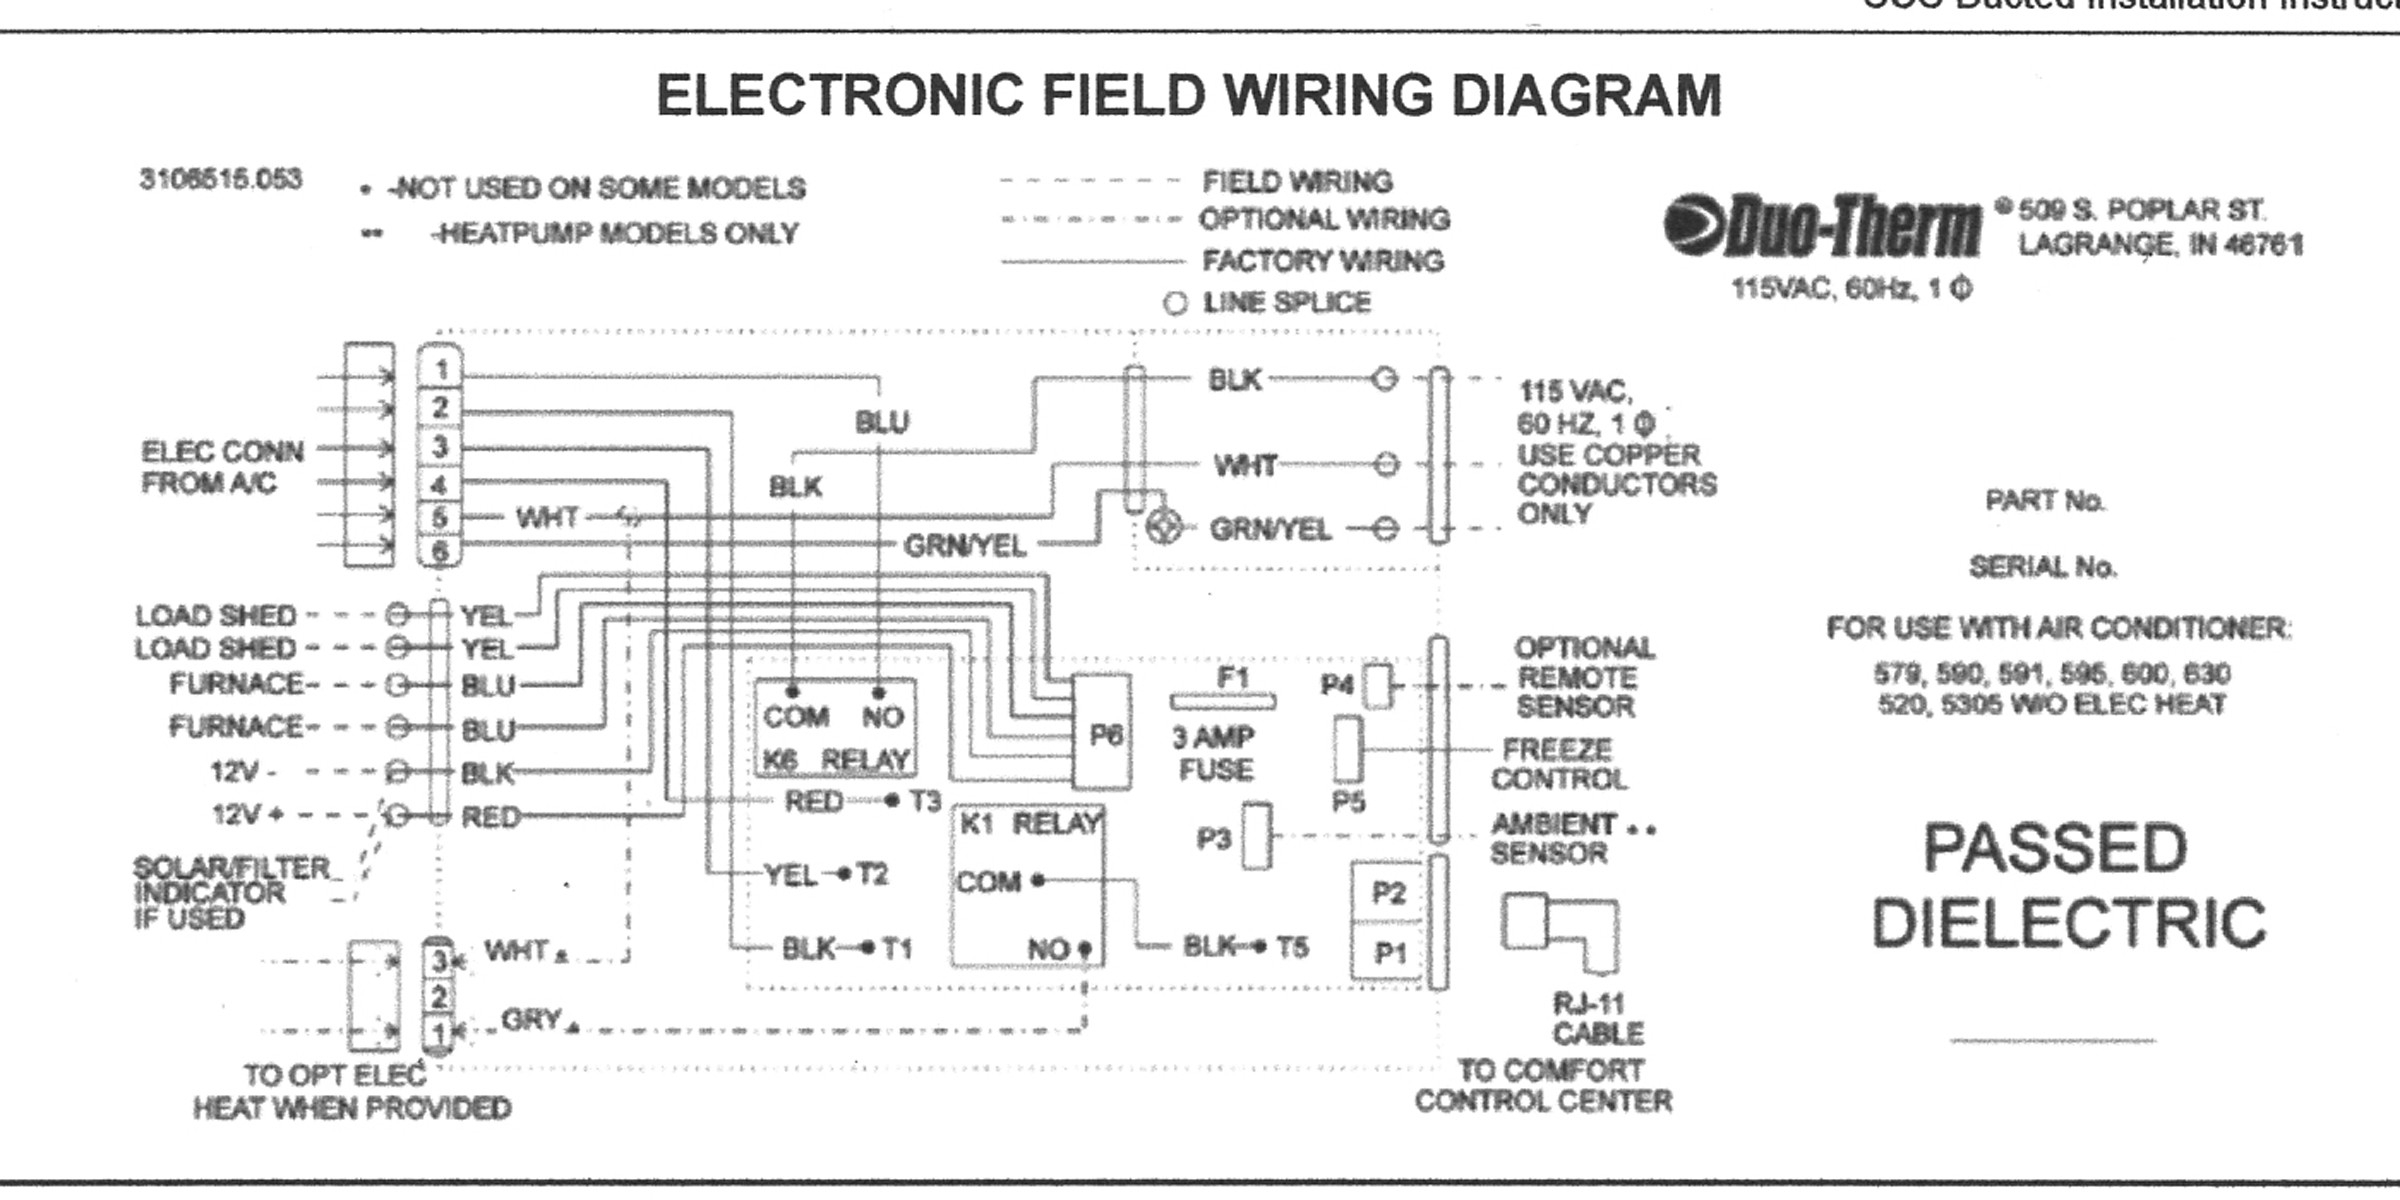 duo therm wiring diagram Collection-Wiring A Ac Thermostat Diagram New Duo Therm Thermostat Wiring Diagram And Suburban Rv Furnace Wiring 19-h